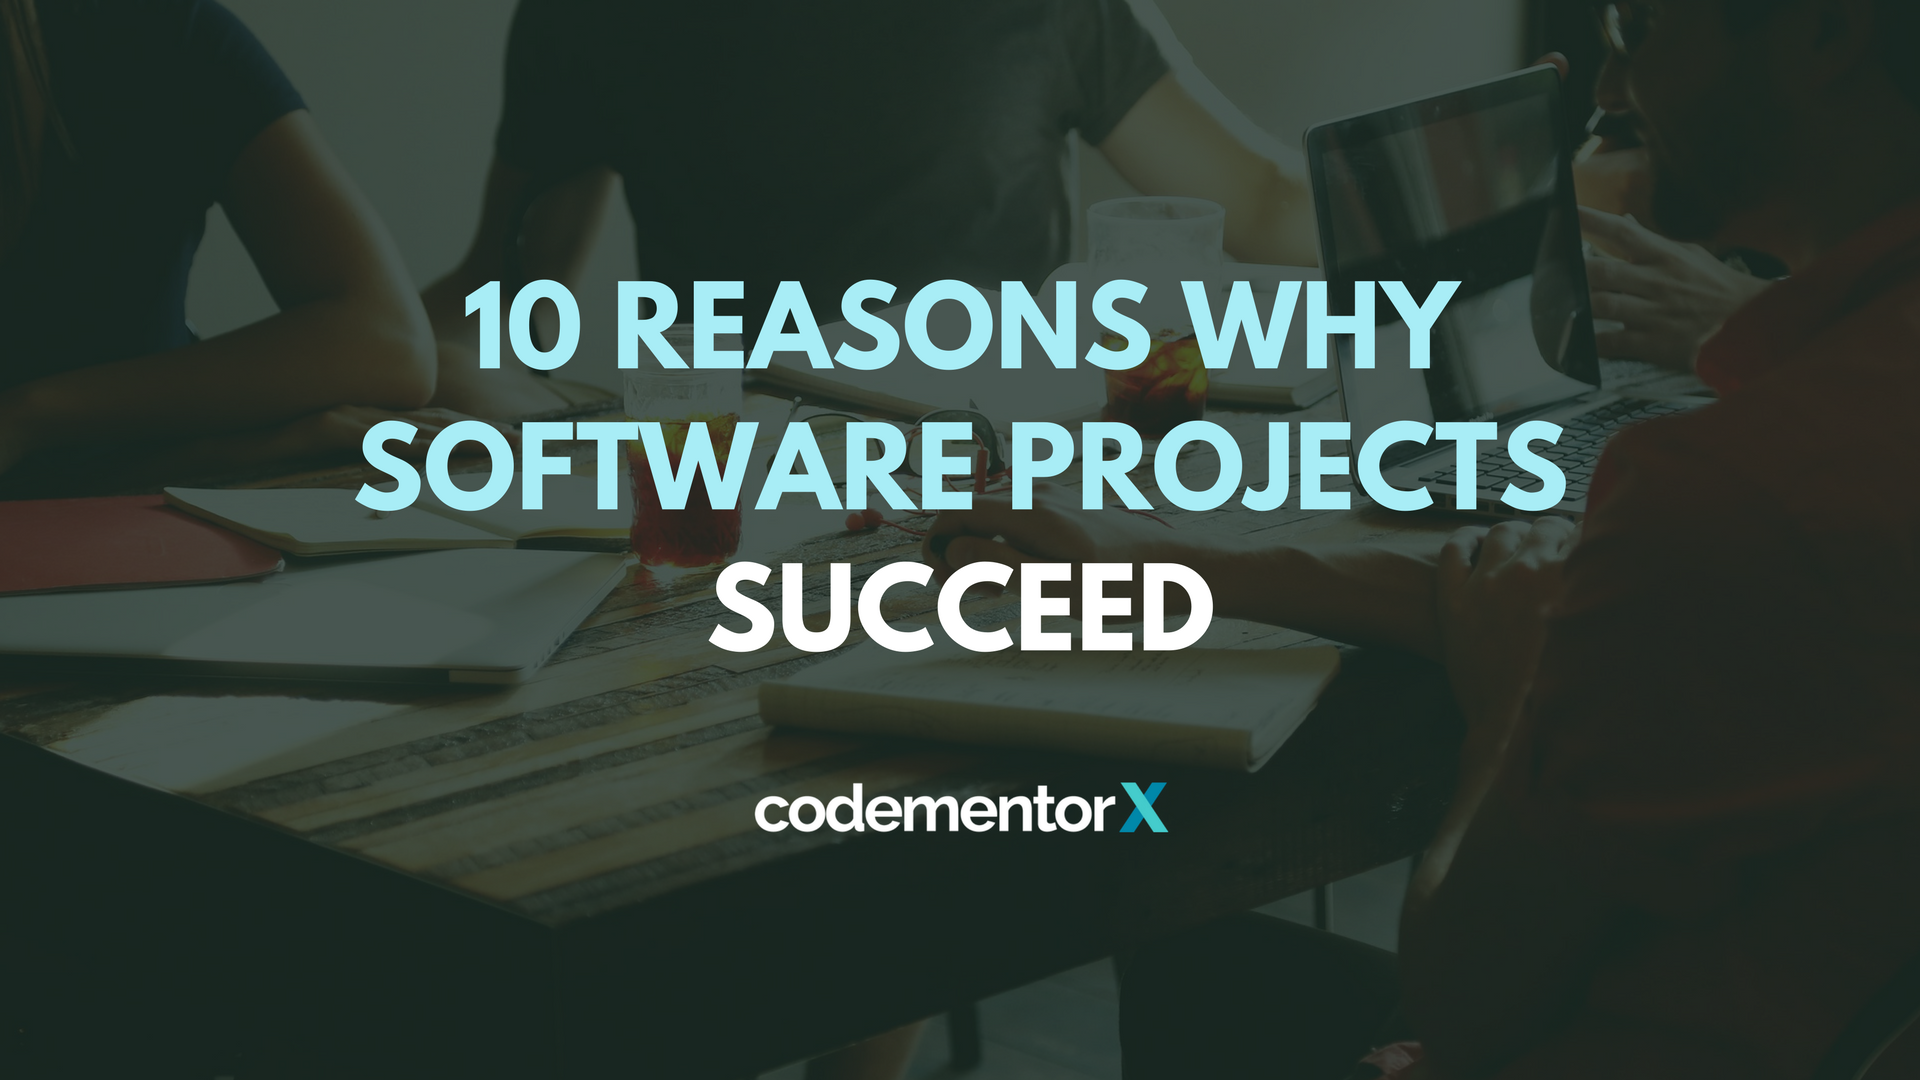 10 Reasons Why Software Projects Succeed